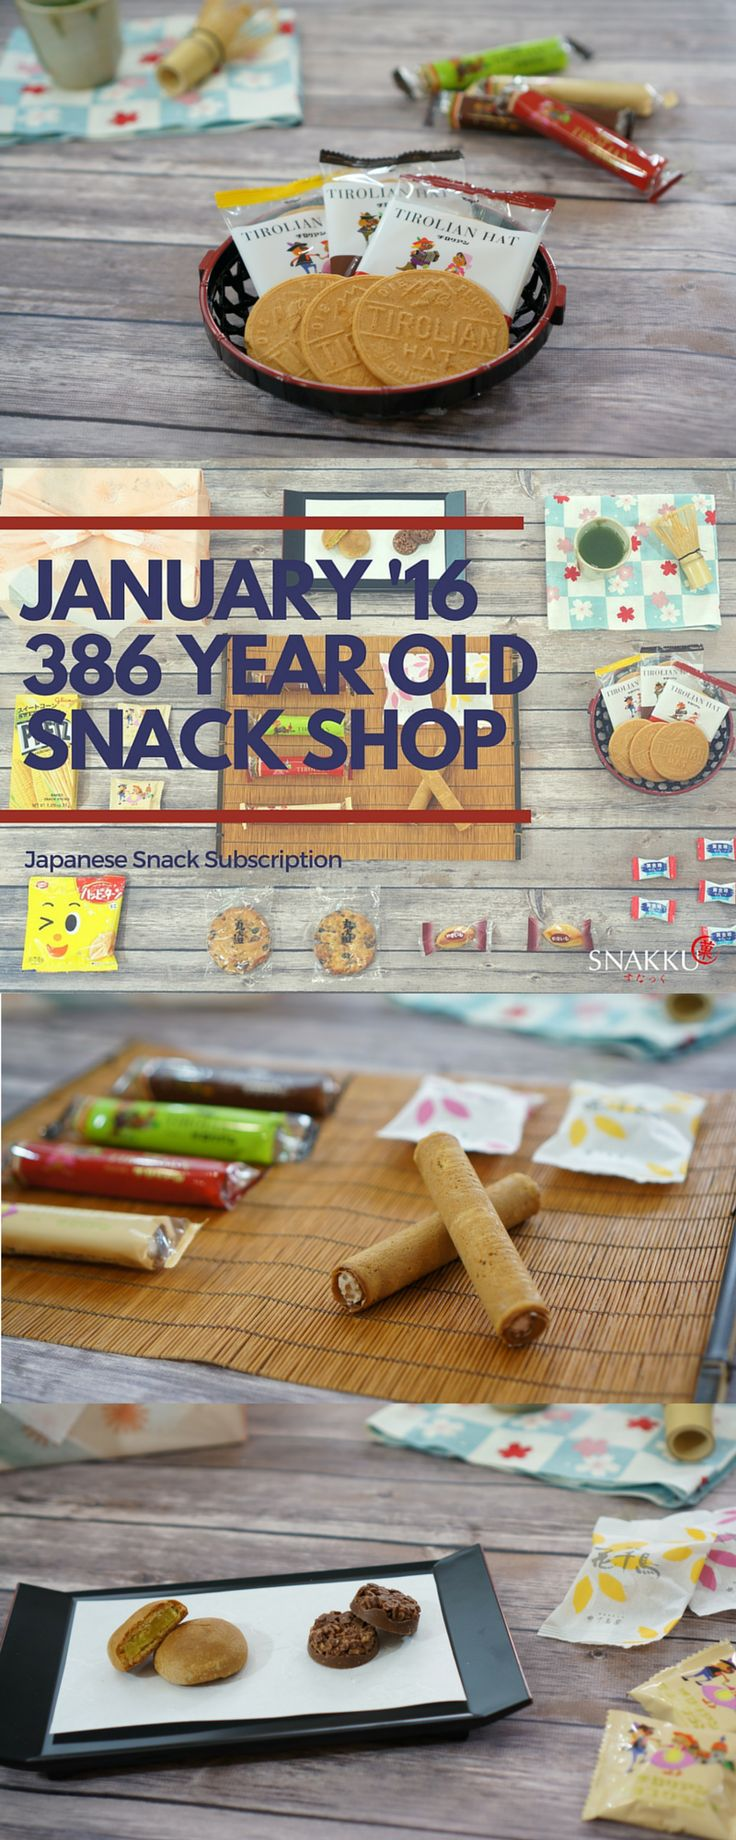 The January Snakku Japanese snack subscription box was filled with delicious snacks featuring a 386-year-old snack shop. The renowned Tirolian roll cookies, Tirolian Hat, Hanachidori, and Tirolian Chococrunch included in the box are all still made by hand using the original recipes passed down since 1630! We also added other snacks like Pretz corn, Happy Turn rice crackers, lemon yogurt candy, just to name a few, to make your Snakku snack box even more special.